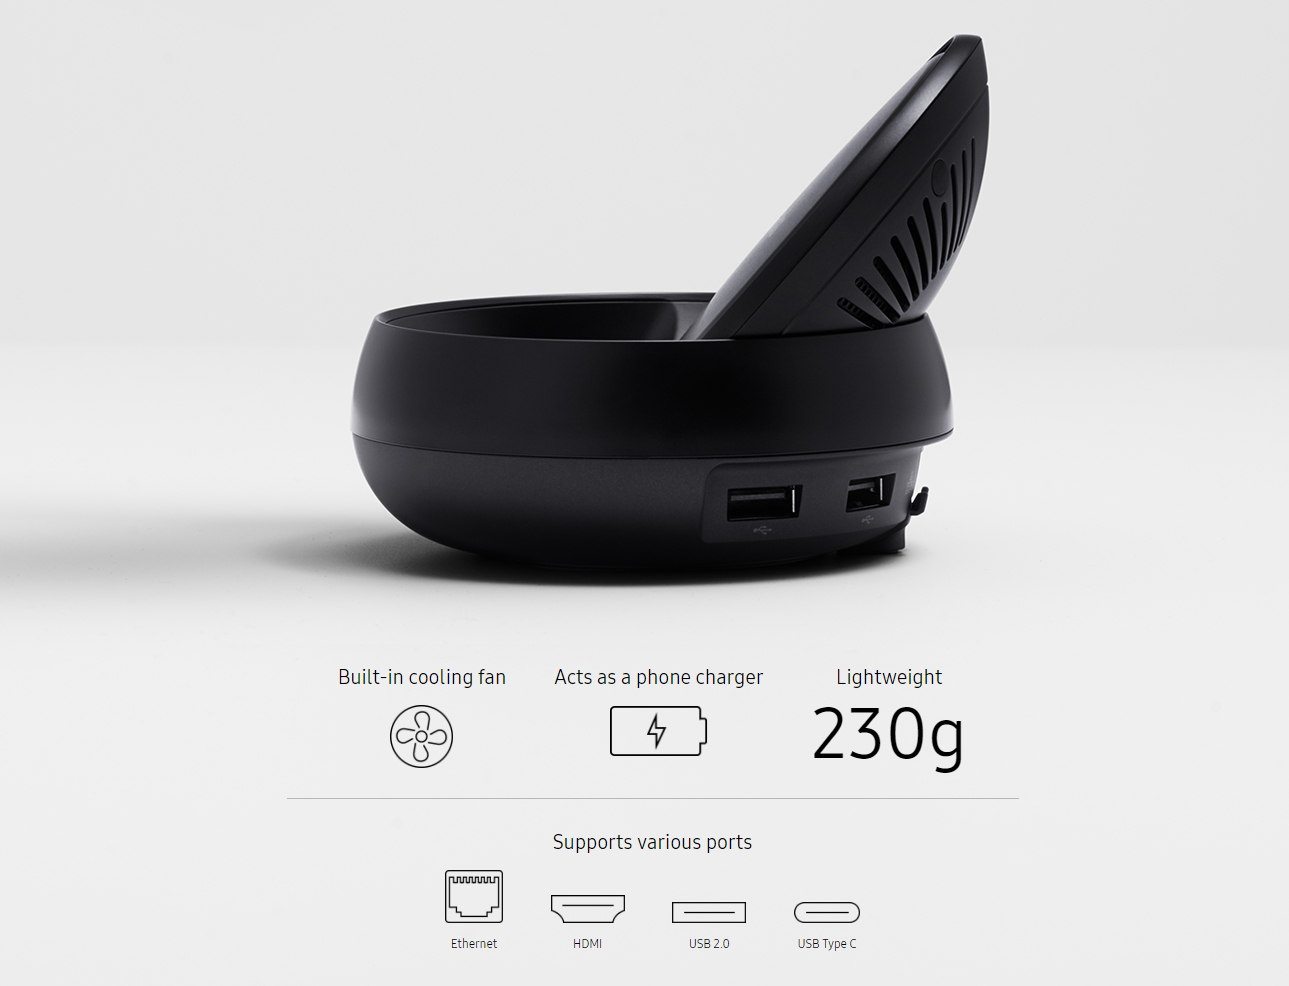 Samsung DeX Station EE MG950 | Dustin.no